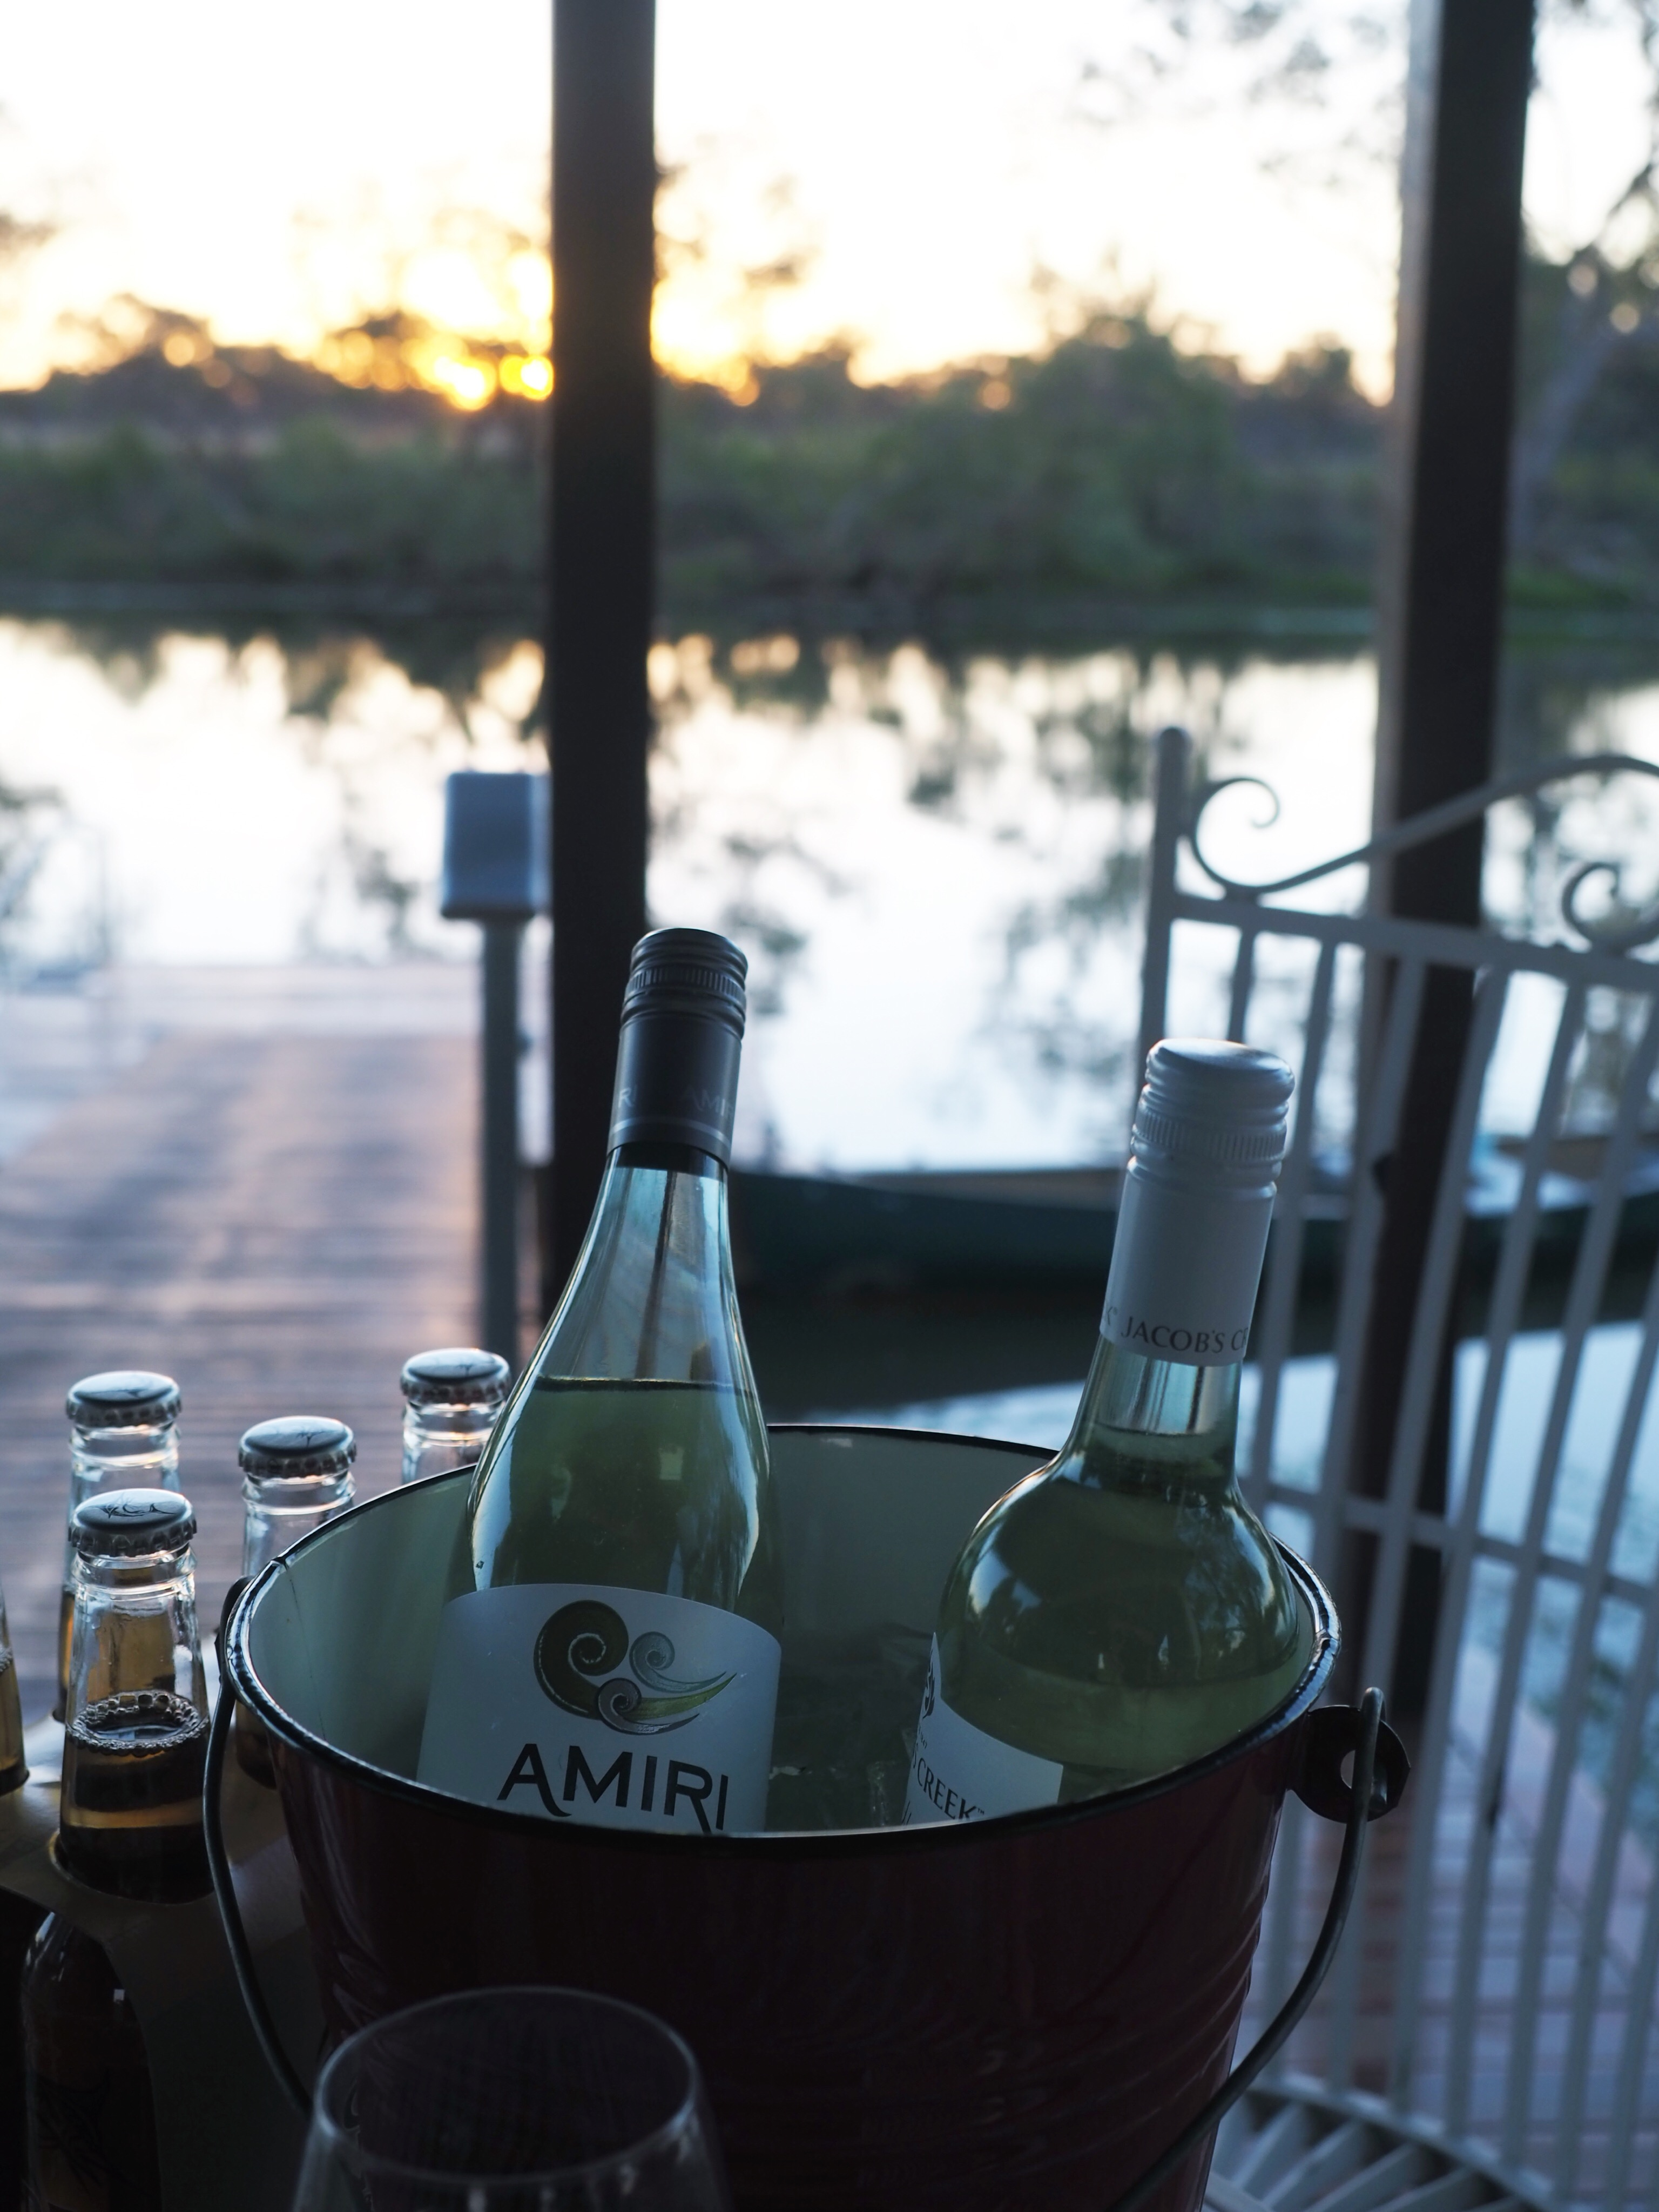 Fours Days In The Queensland Outback Fat Mum Slim Splash Bottle Acs Series After Sunset We Headed To Main House Where Deon And Lane Live For A Gourmet Dinner Is Quite Cook Offering True Paddock Plate